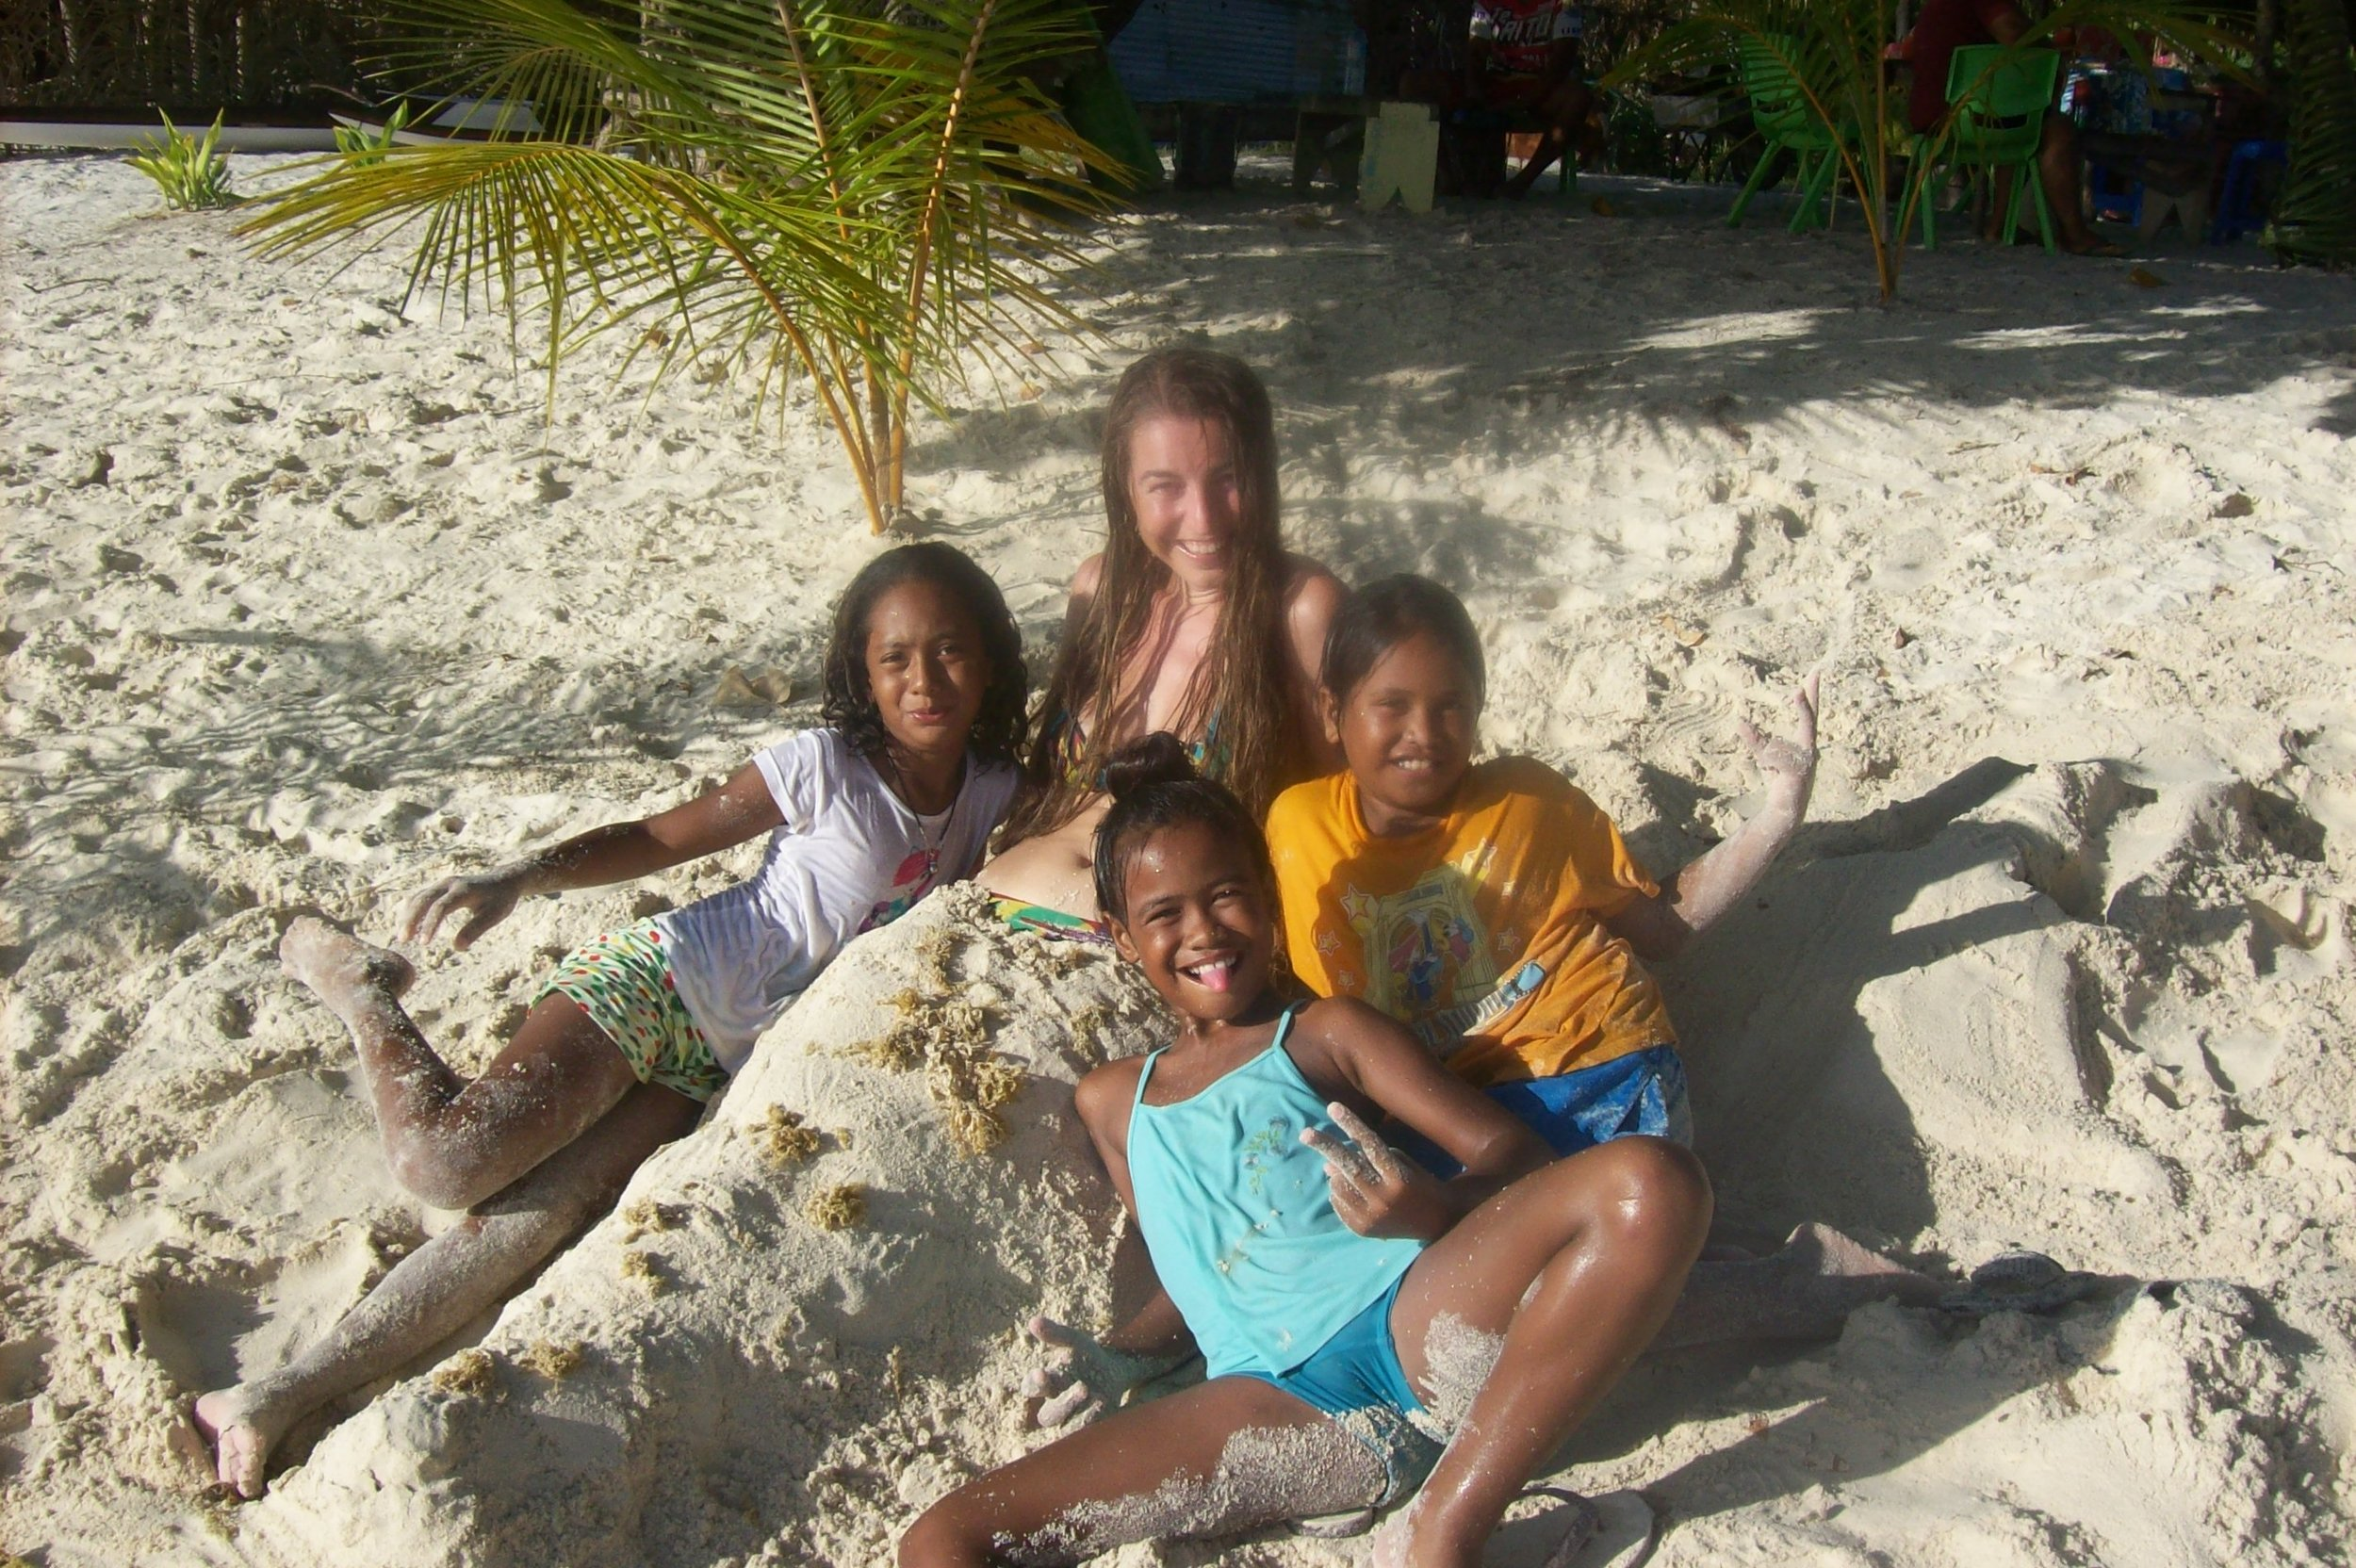 Virginie from SV Photograph with little vahines in Maupiti